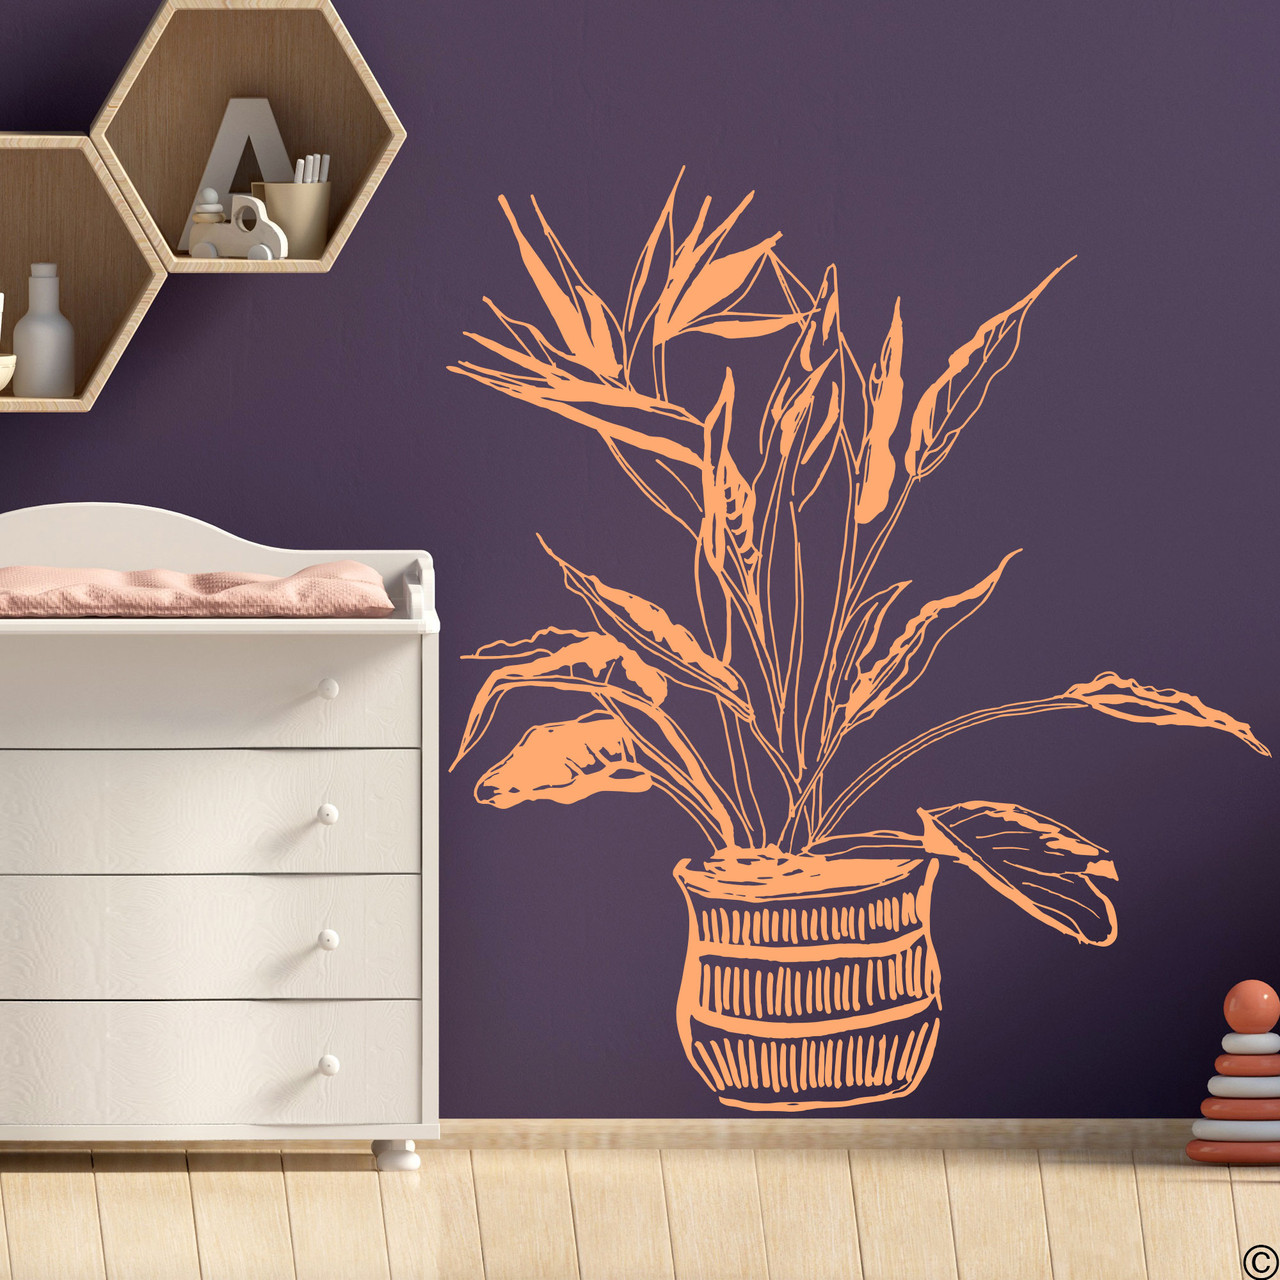 The hand drawn Bird of Paradise potted plant wall decal in the limited edition apricot vinyl color.